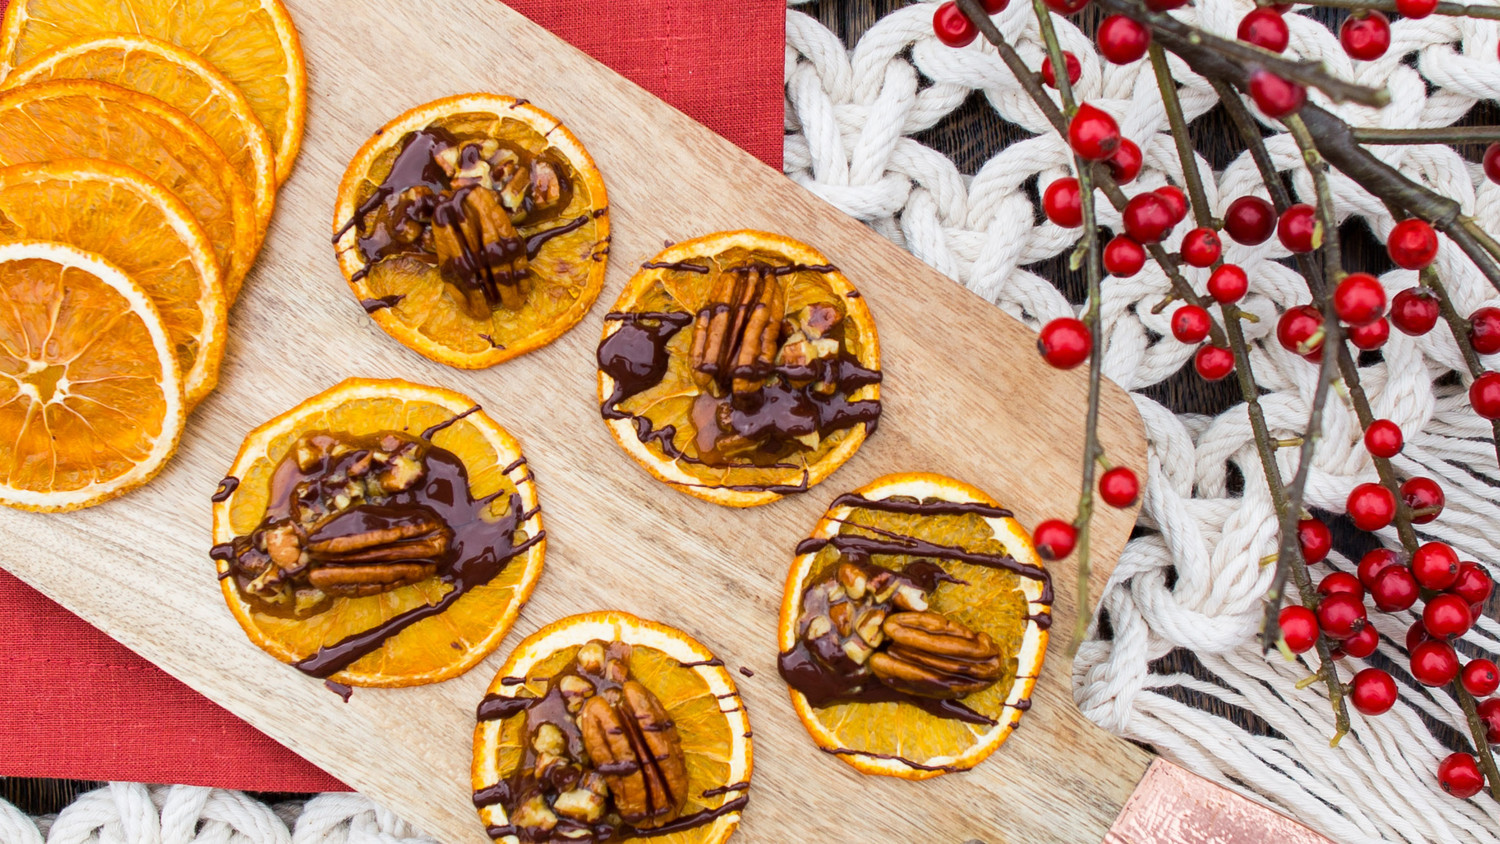 Gluten Free Thanksgiving Appetizers  Simple Gluten Free Thanksgiving Appetizers Both Savory and